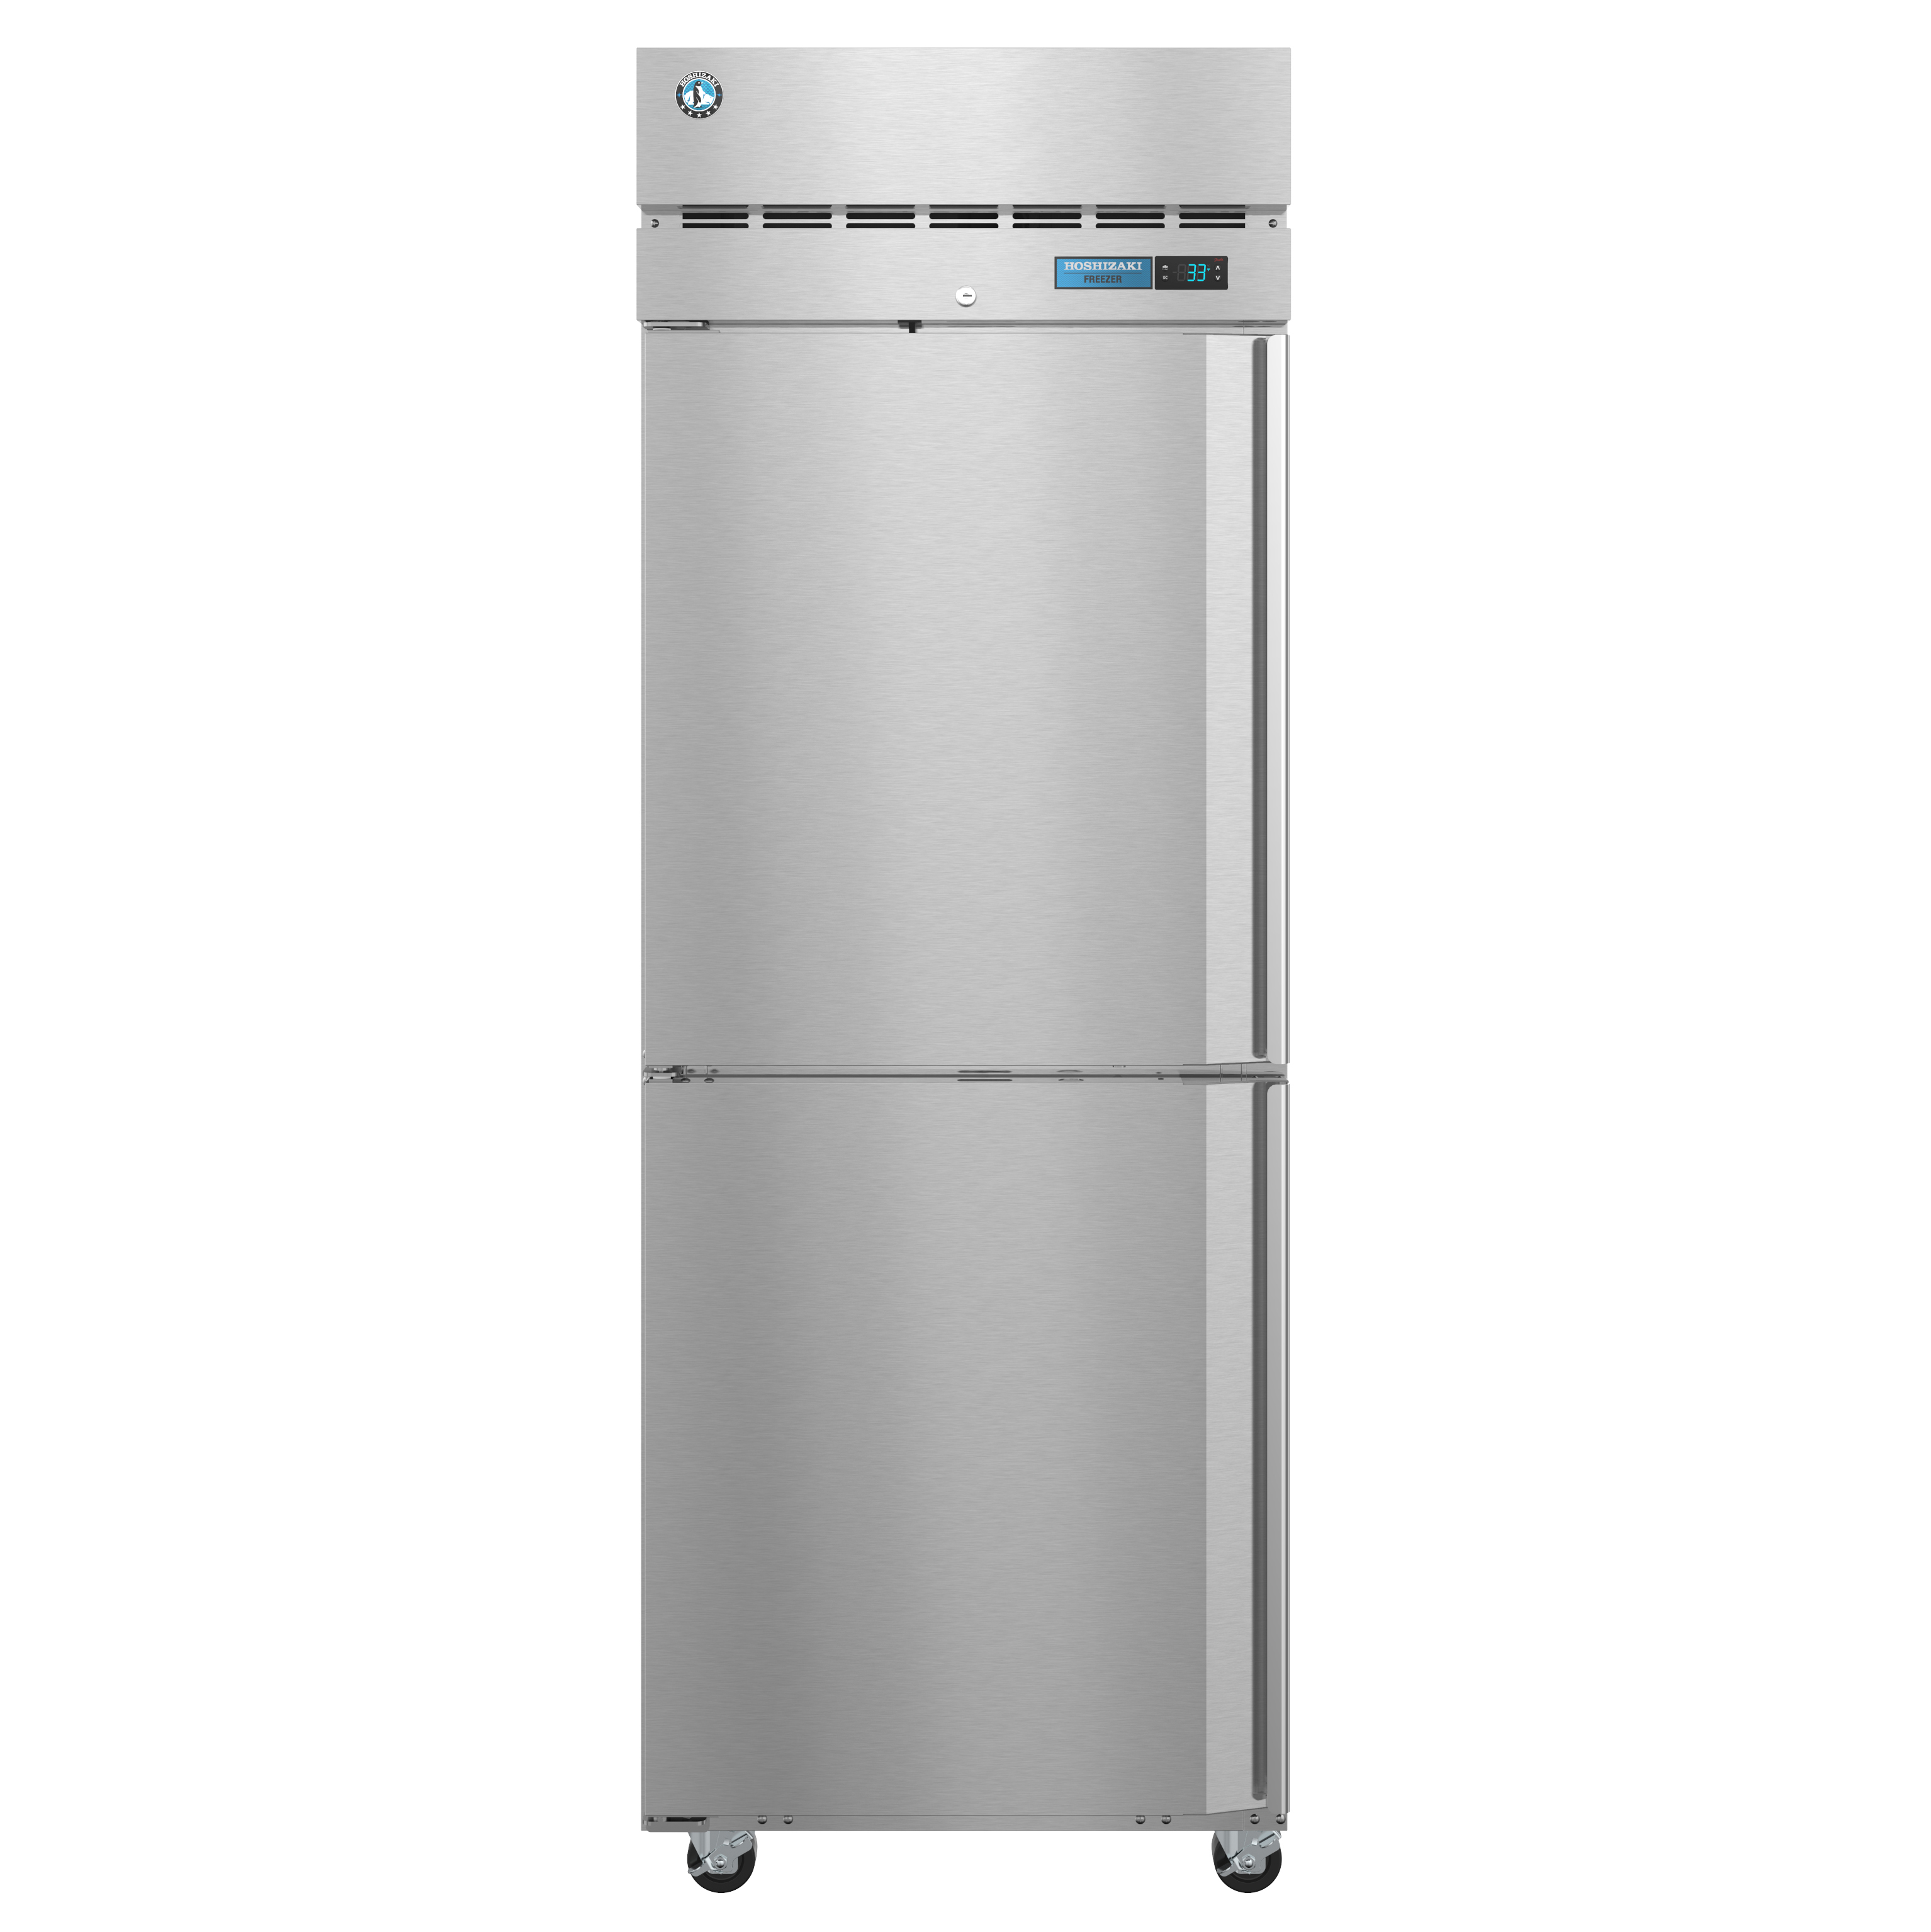 Hoshizaki F1A-HSL reach-in refrigerators & freezers